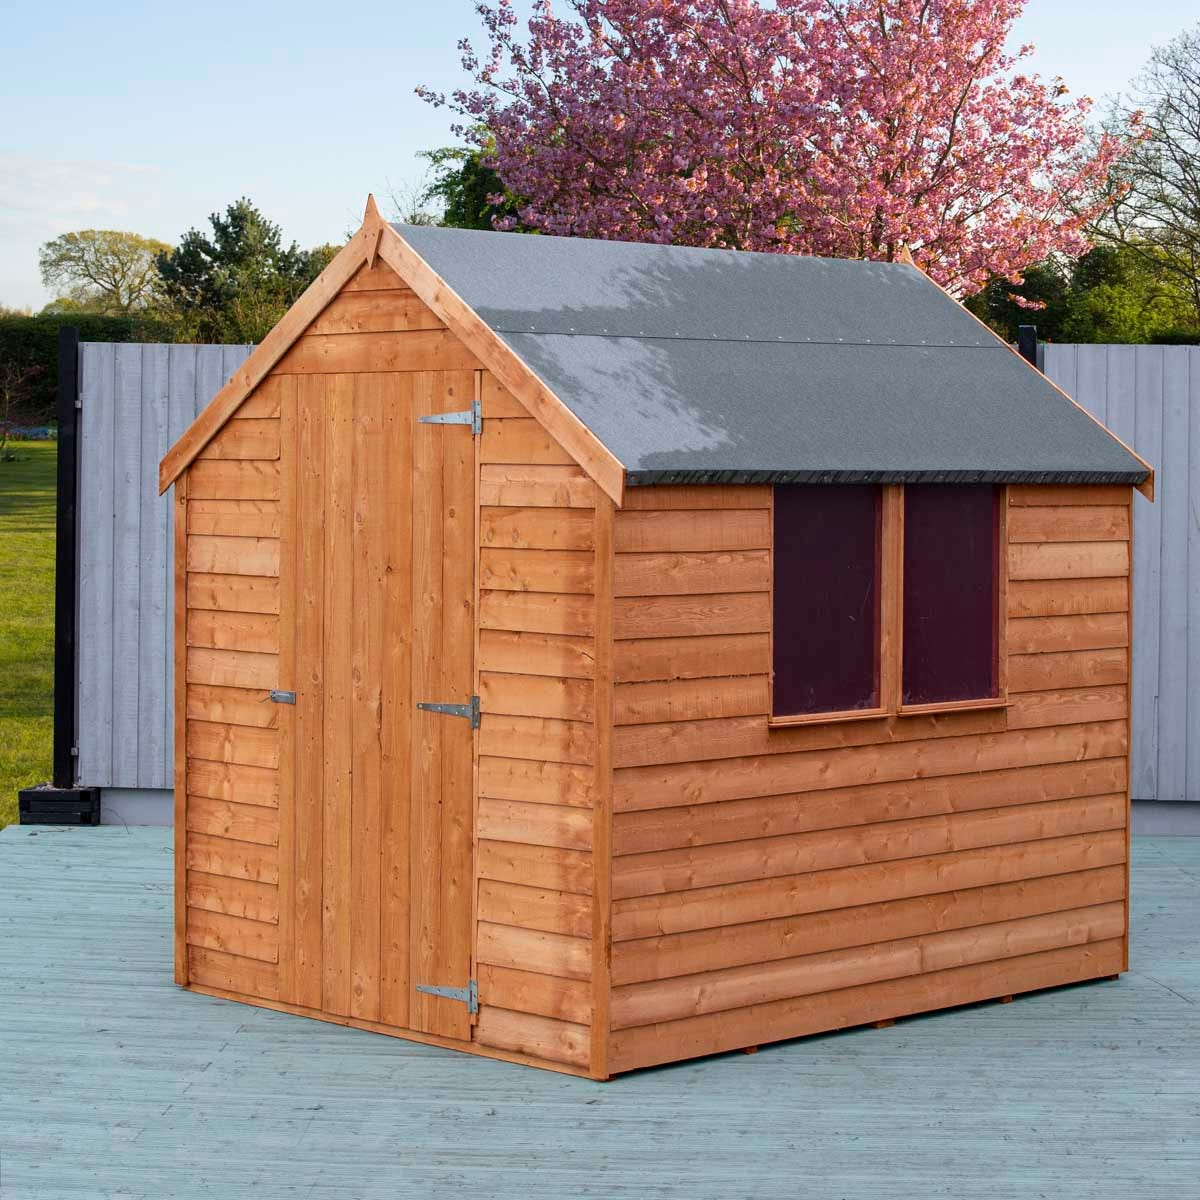 Shire Overlap 7' x 5' Value Shed with Window